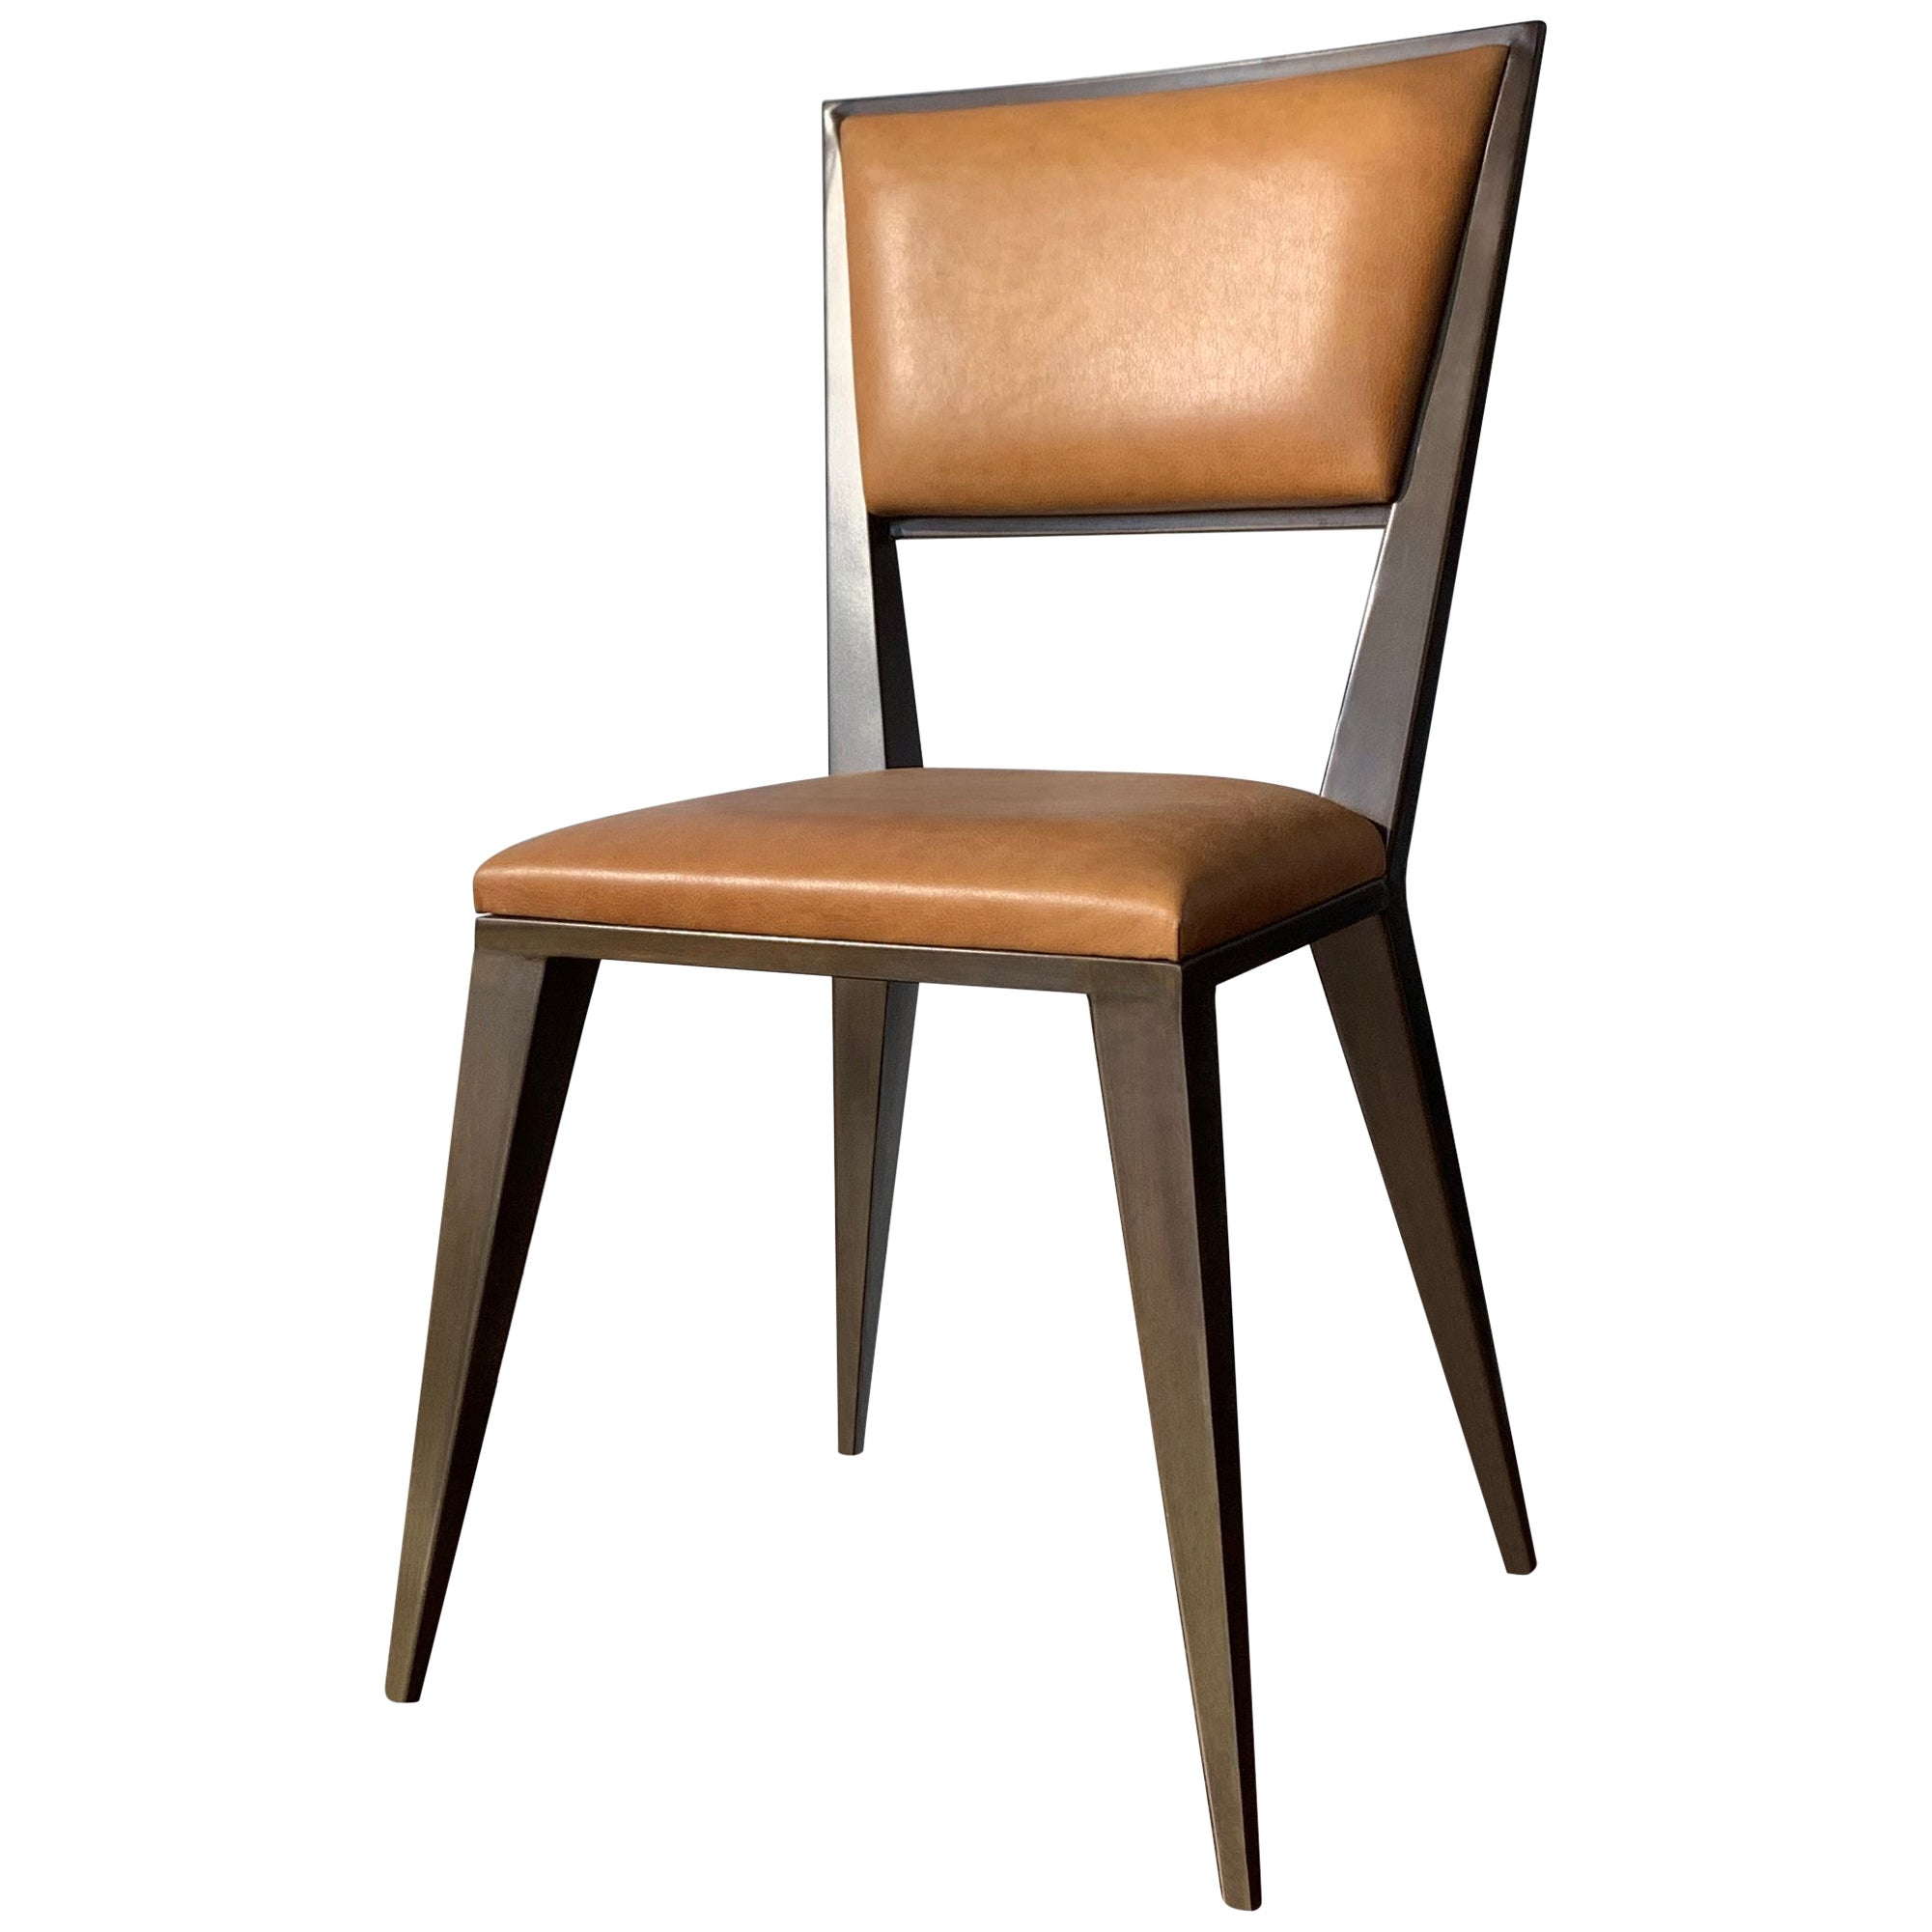 Modern Metal and Leather Dining Chair, Rodelio, from Costantini